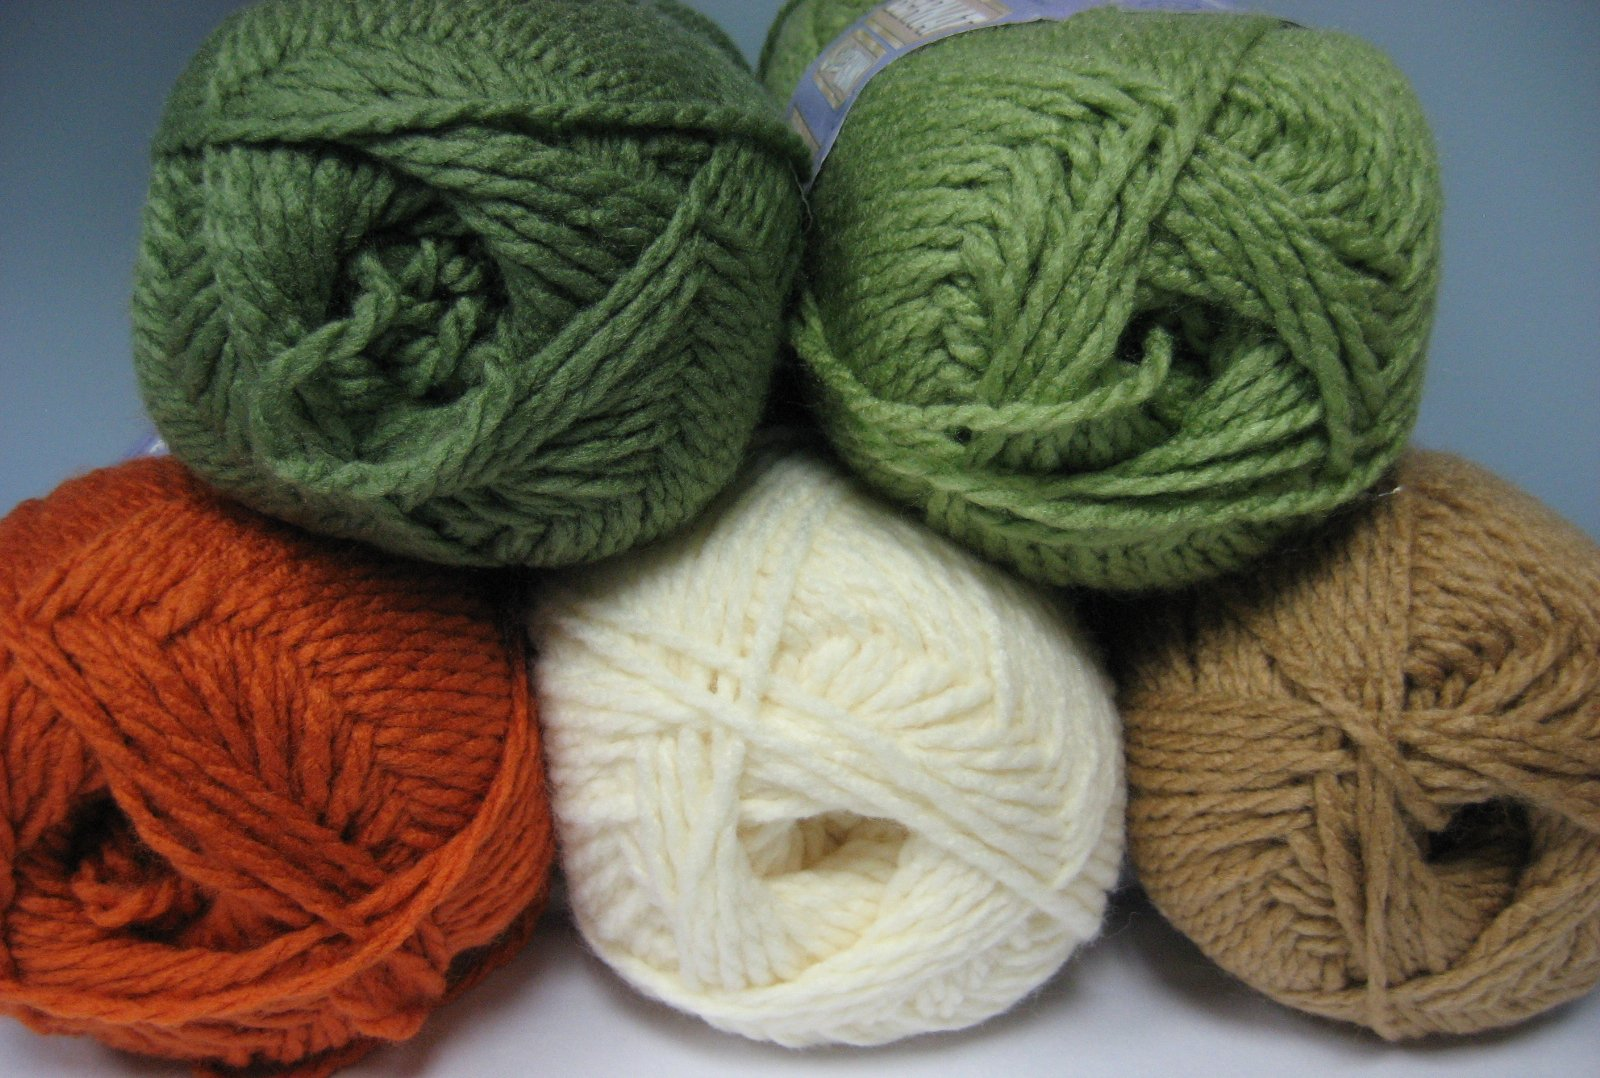 Crochet Yarn For Beginners : YARN FOR CROCHETING Crochet For Beginners